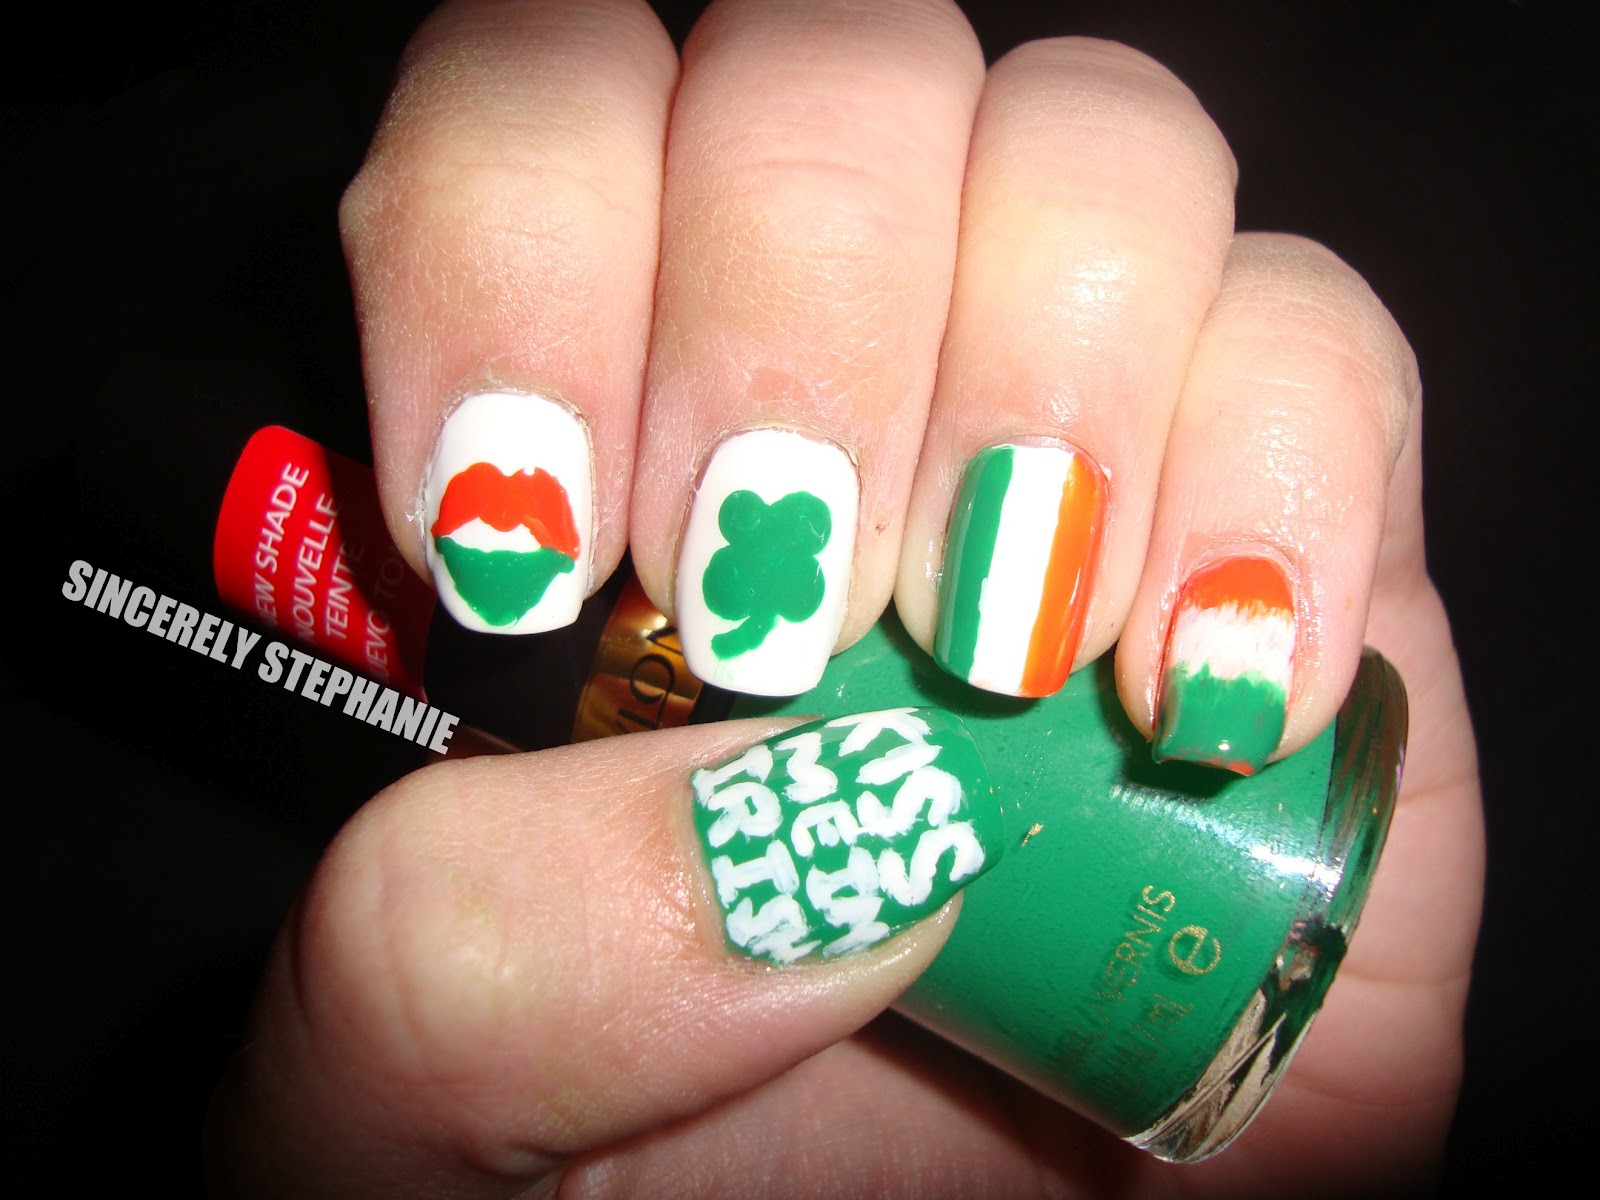 Irish Nail Designs Pictures to Pin on Pinterest - ThePinsta